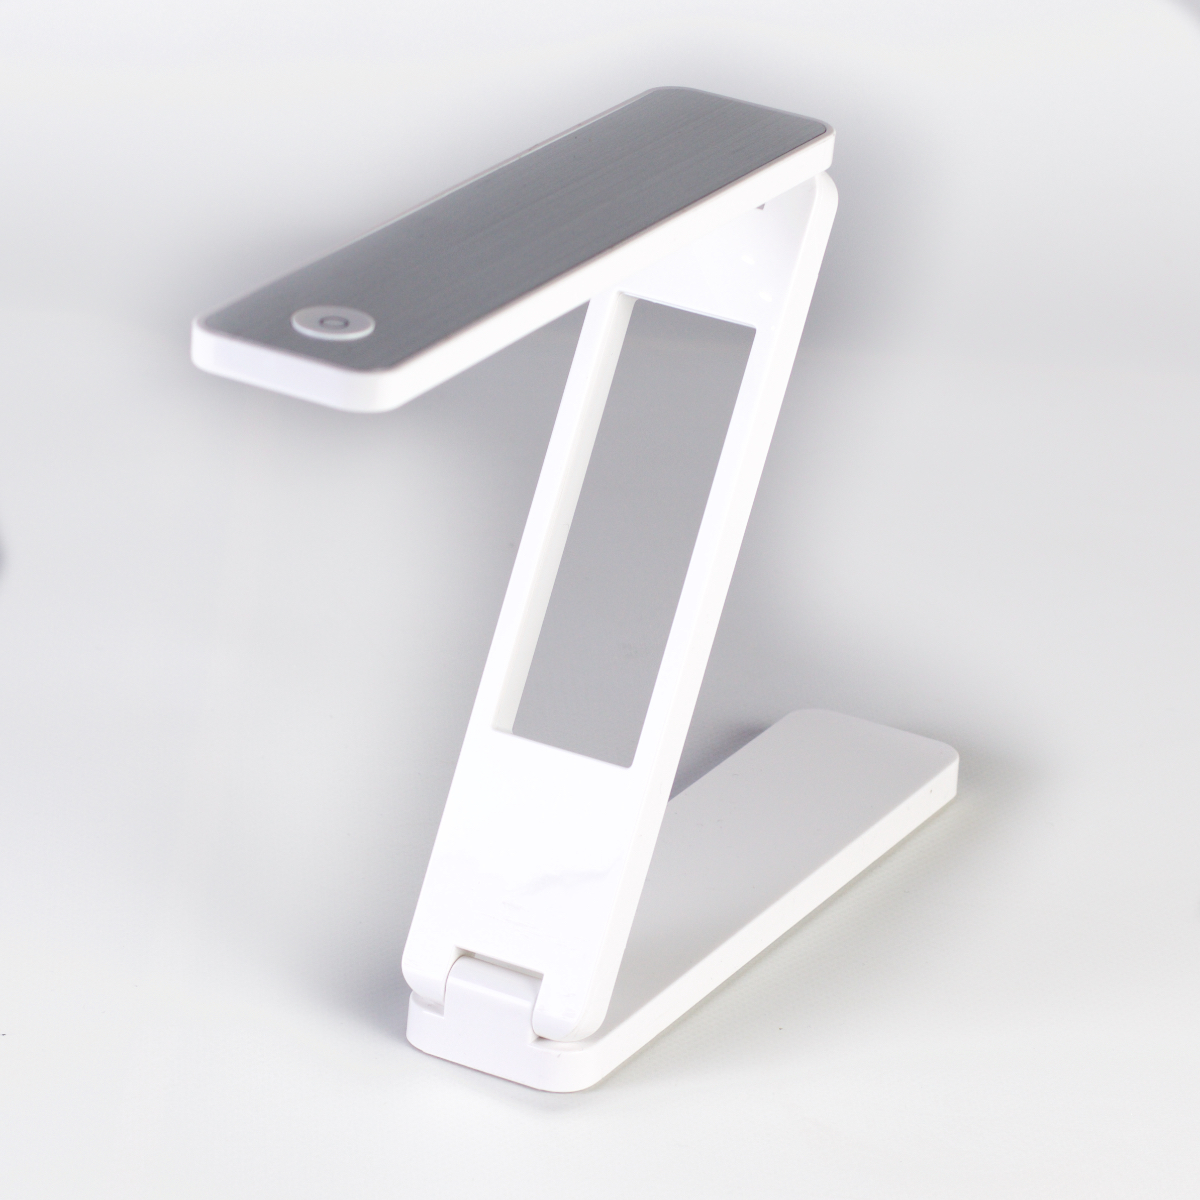 Led Z Lamp Useful Folding And Portable Rechargeable Light